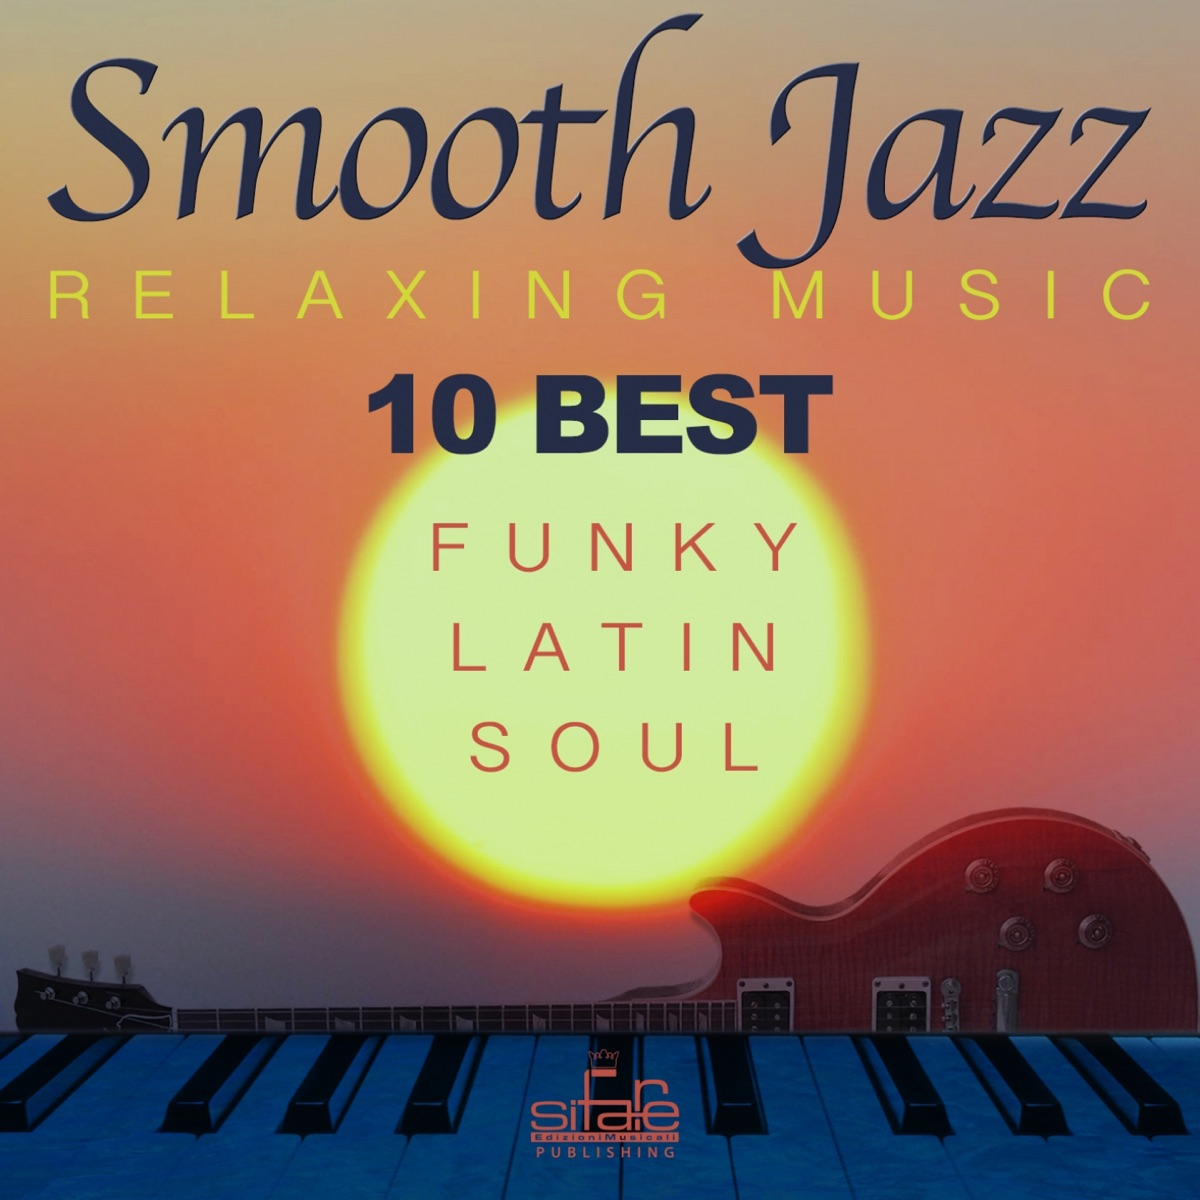 10 Best Smooth Jazz Relaxing Music Album Cover by Francesco